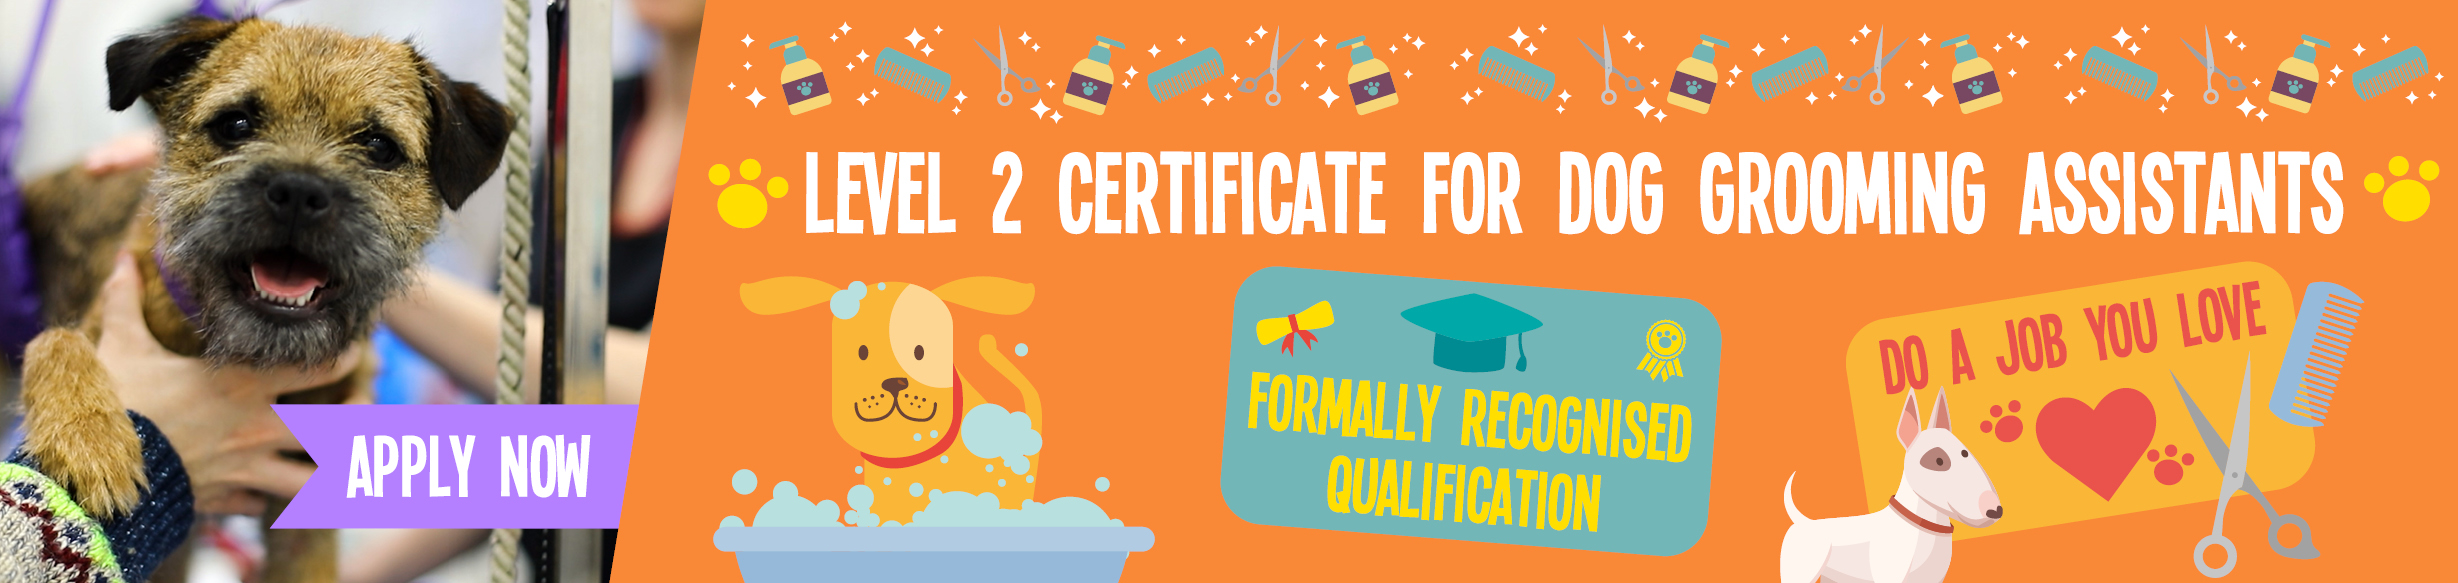 L2 Certificate for Dog Grooming Assistants